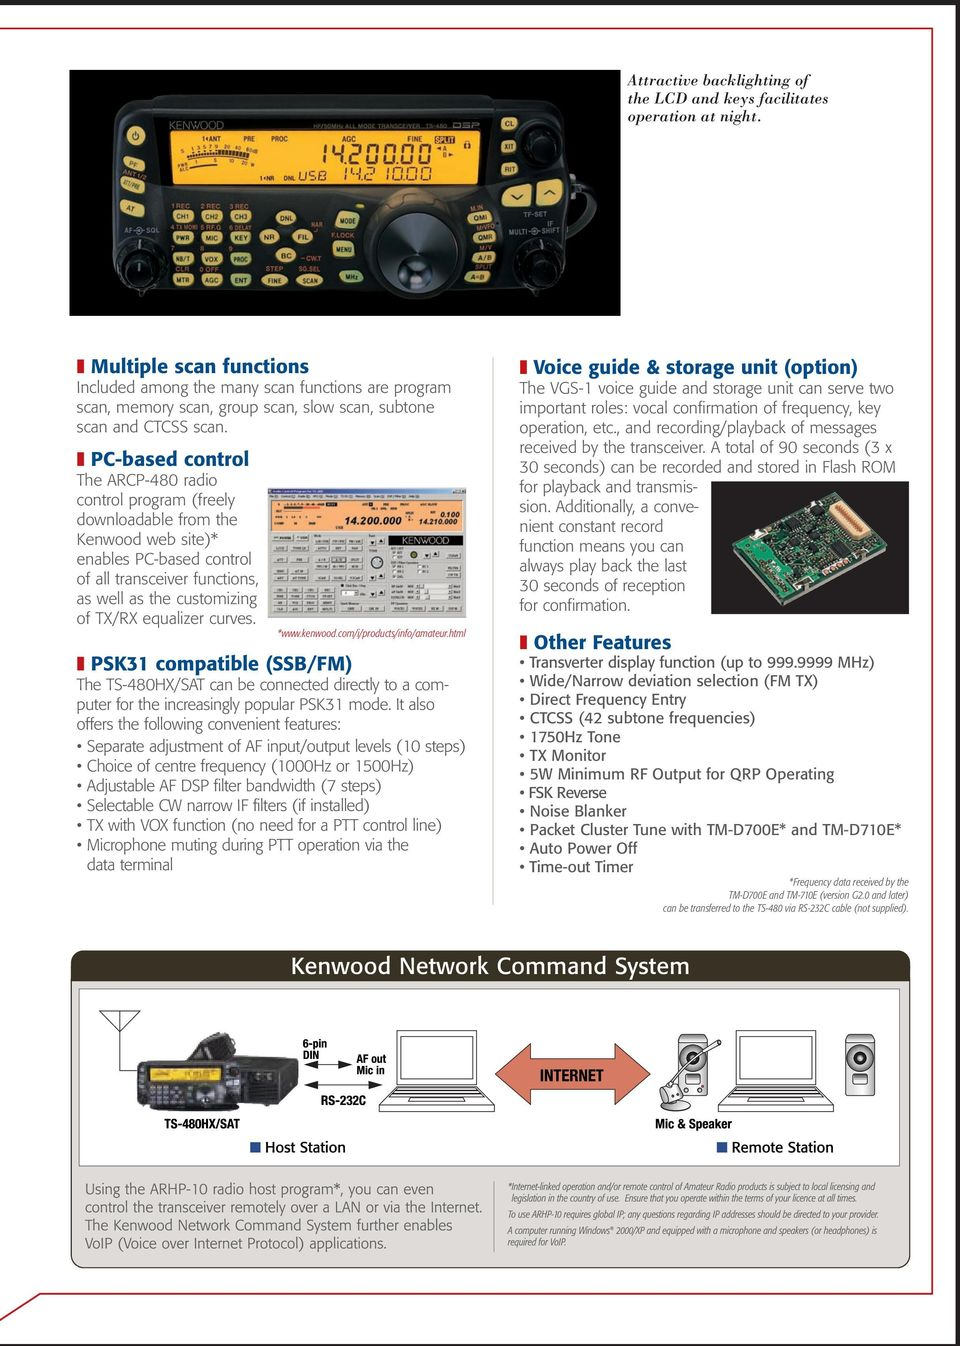 PC-based control The ARCP-480 radio control program (freely downloadable from the Kenwood web site)* enables PC-based control of all transceiver functions, as well as the customizing of TX/RX